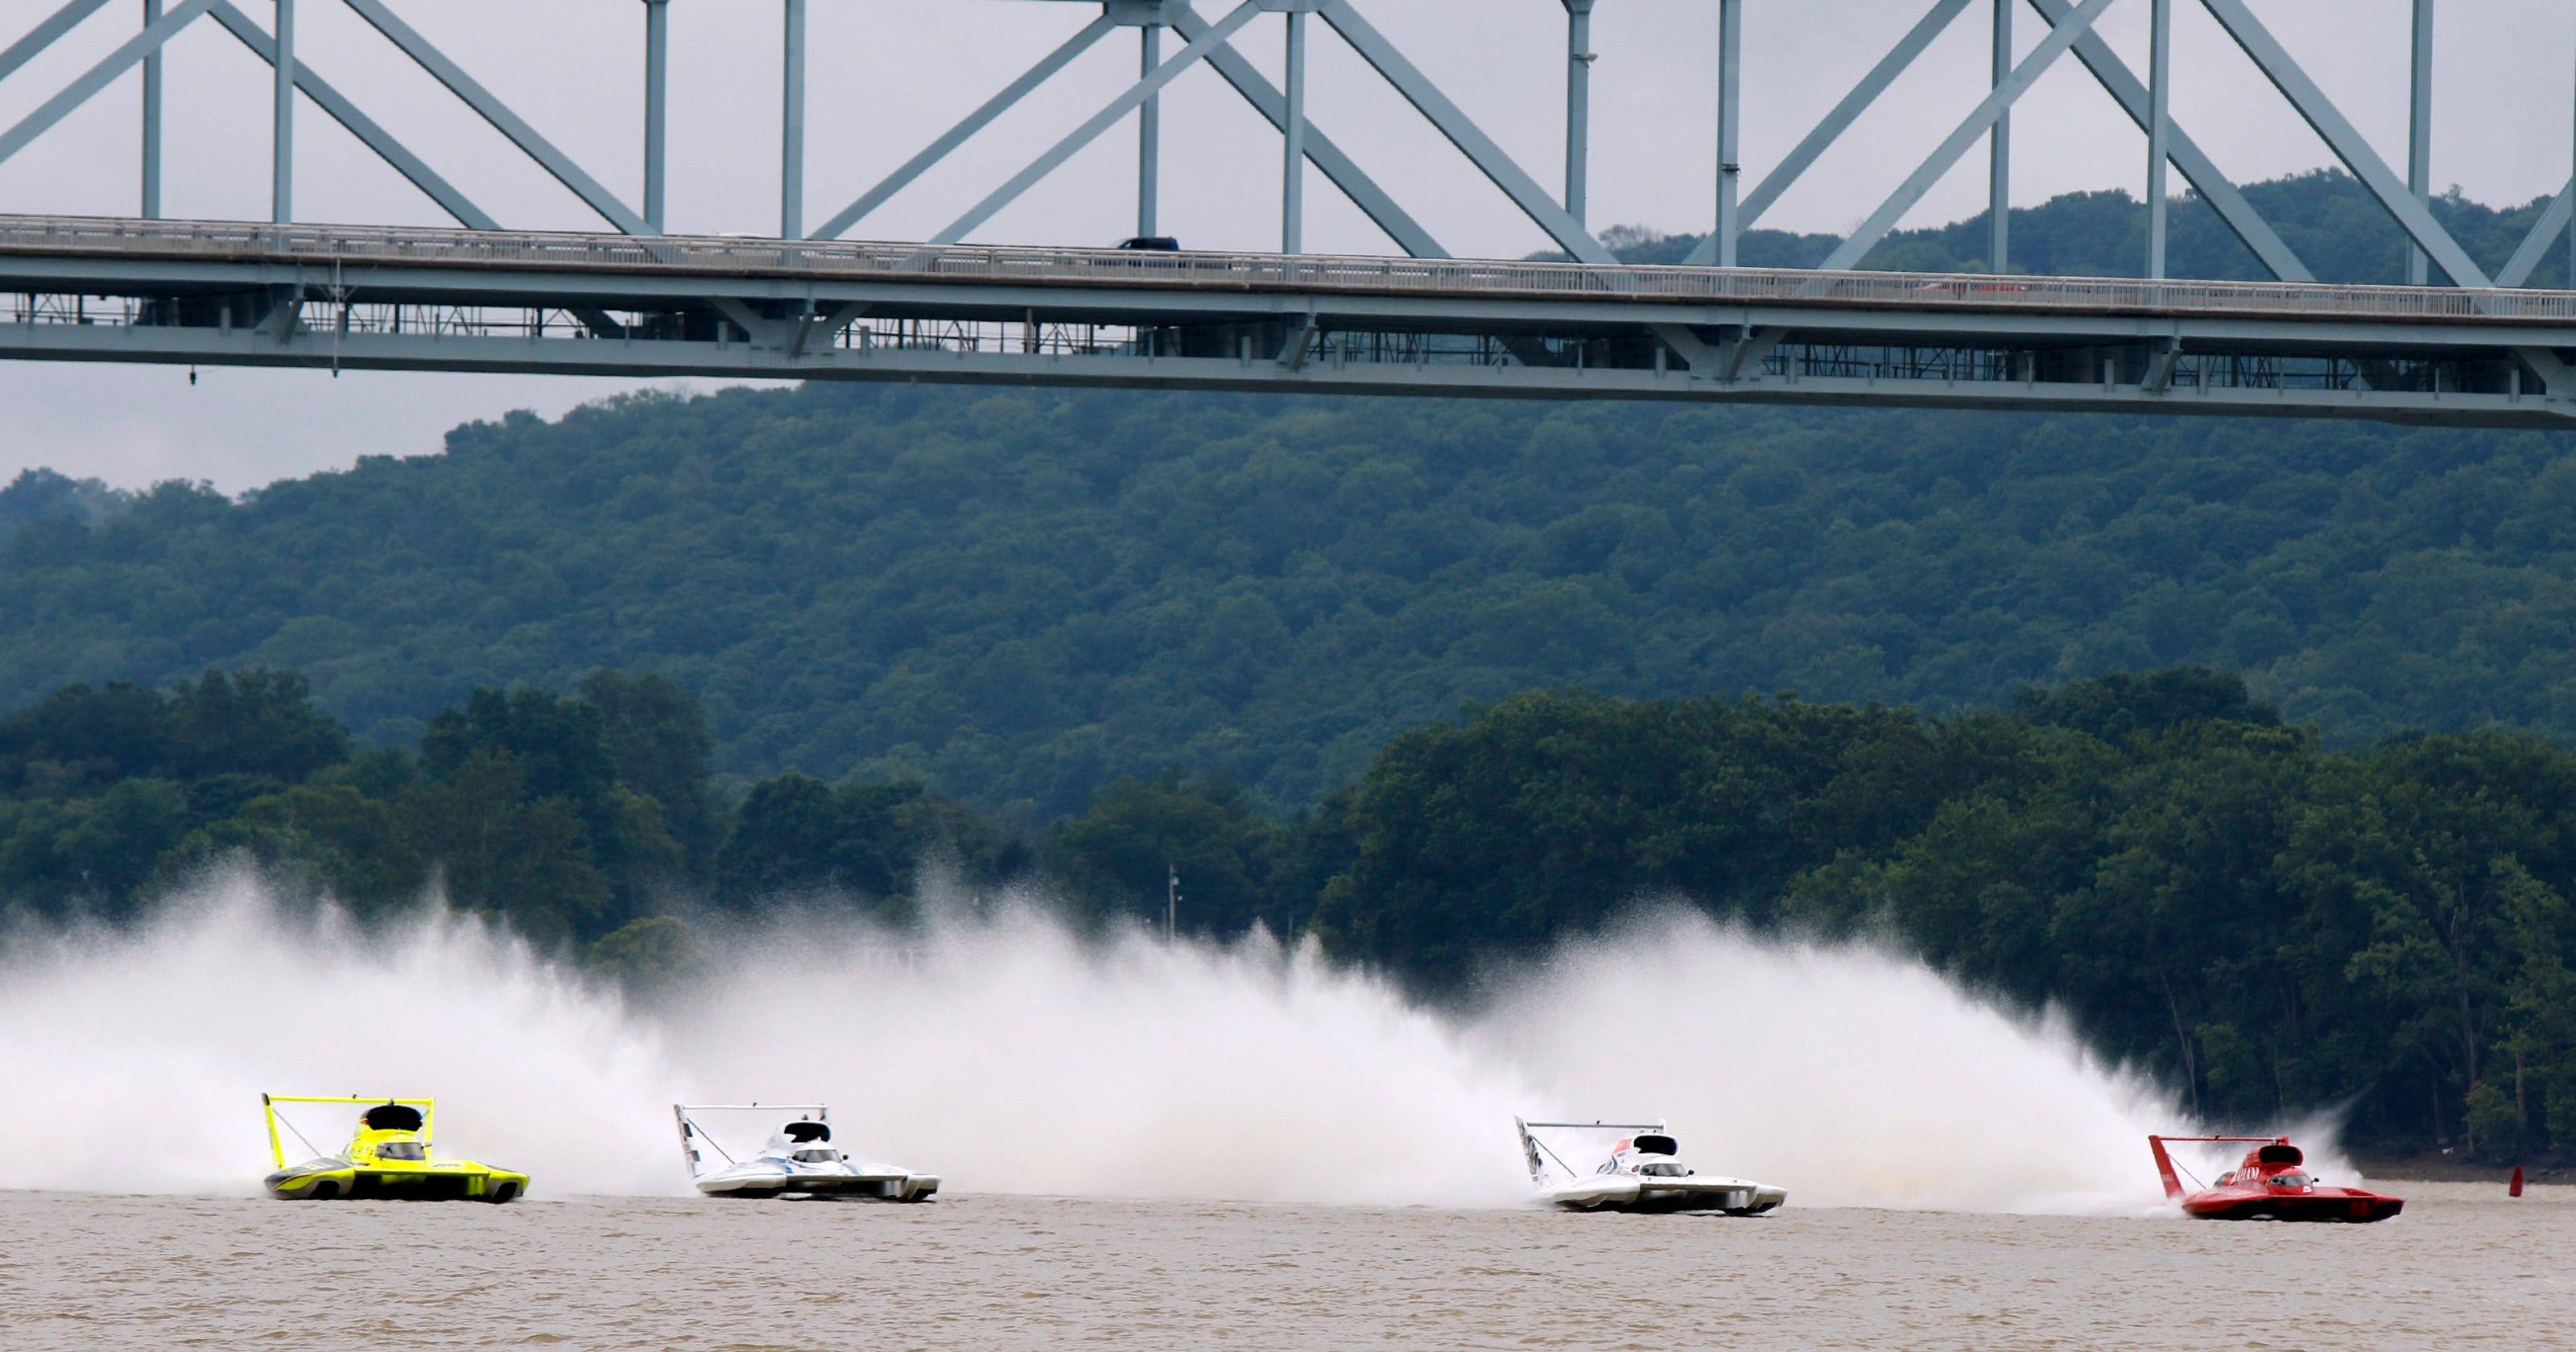 Madison Regatta implements changes to draw younger crowd